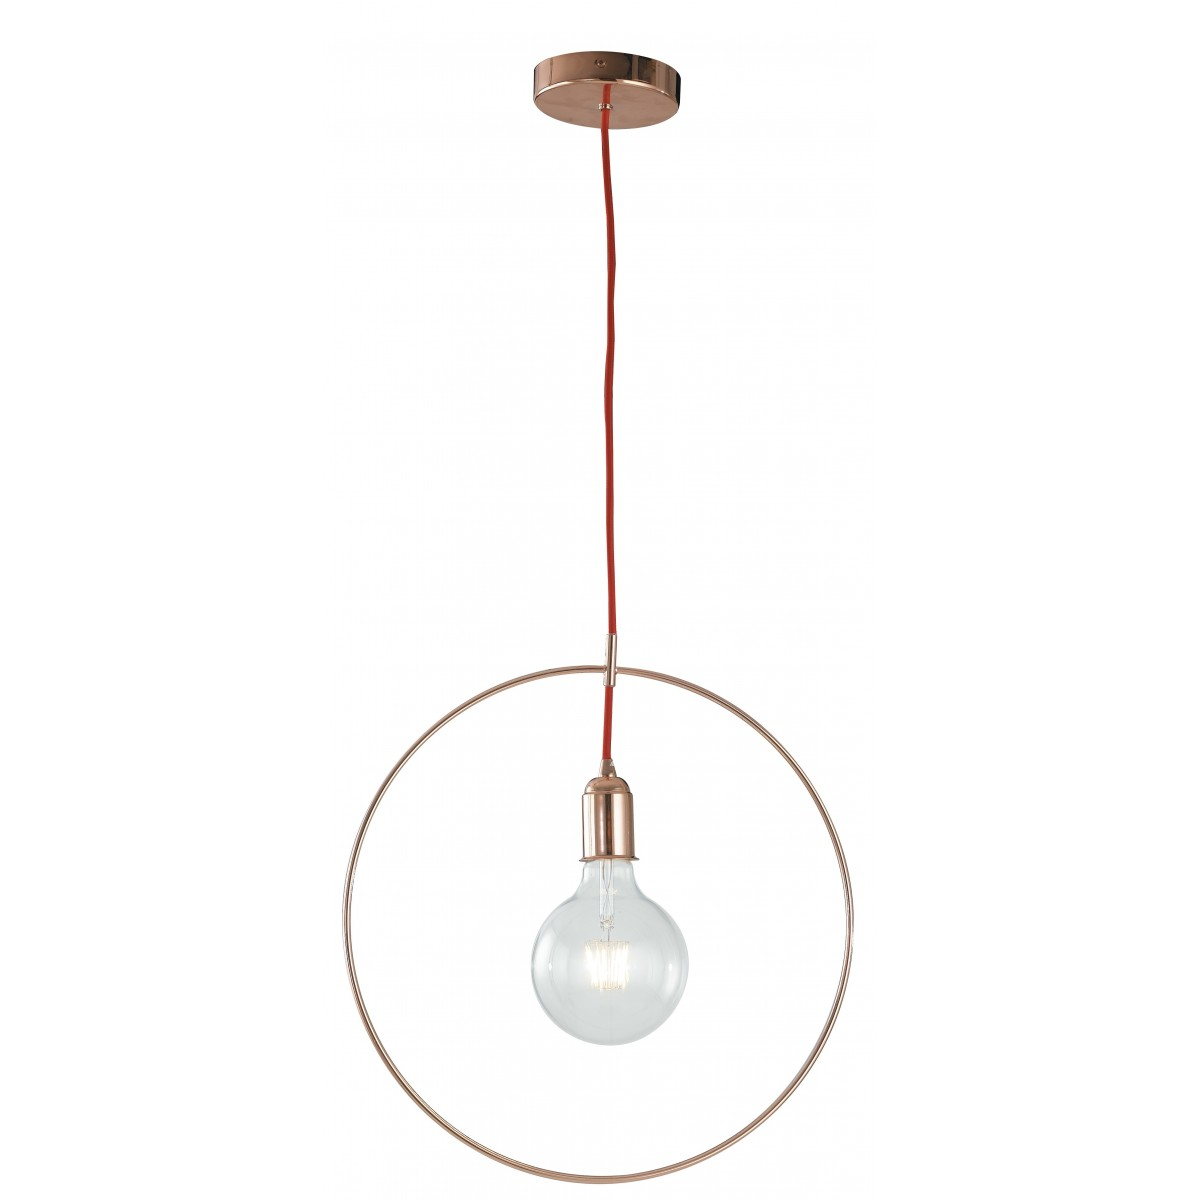 I-FRIDA / S40 - Cercle Suspension Métal Or Rose Câble Rouge Lustre Moderne E27